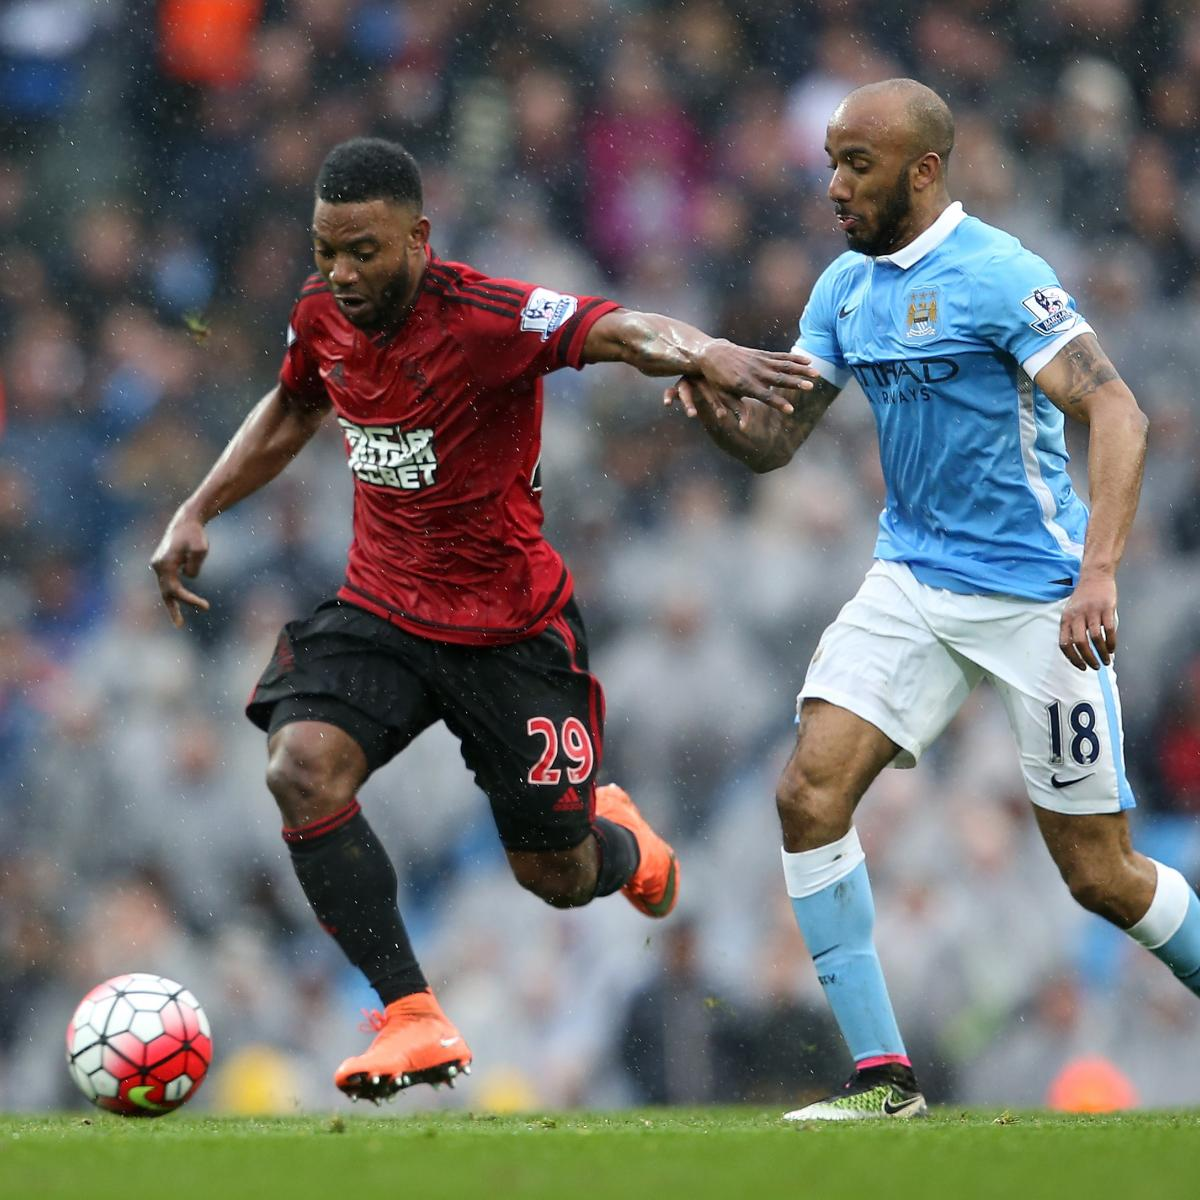 Psg Vs Manchester City Live Score Highlights From: Manchester City Vs. West Brom: Live Score, Highlights From